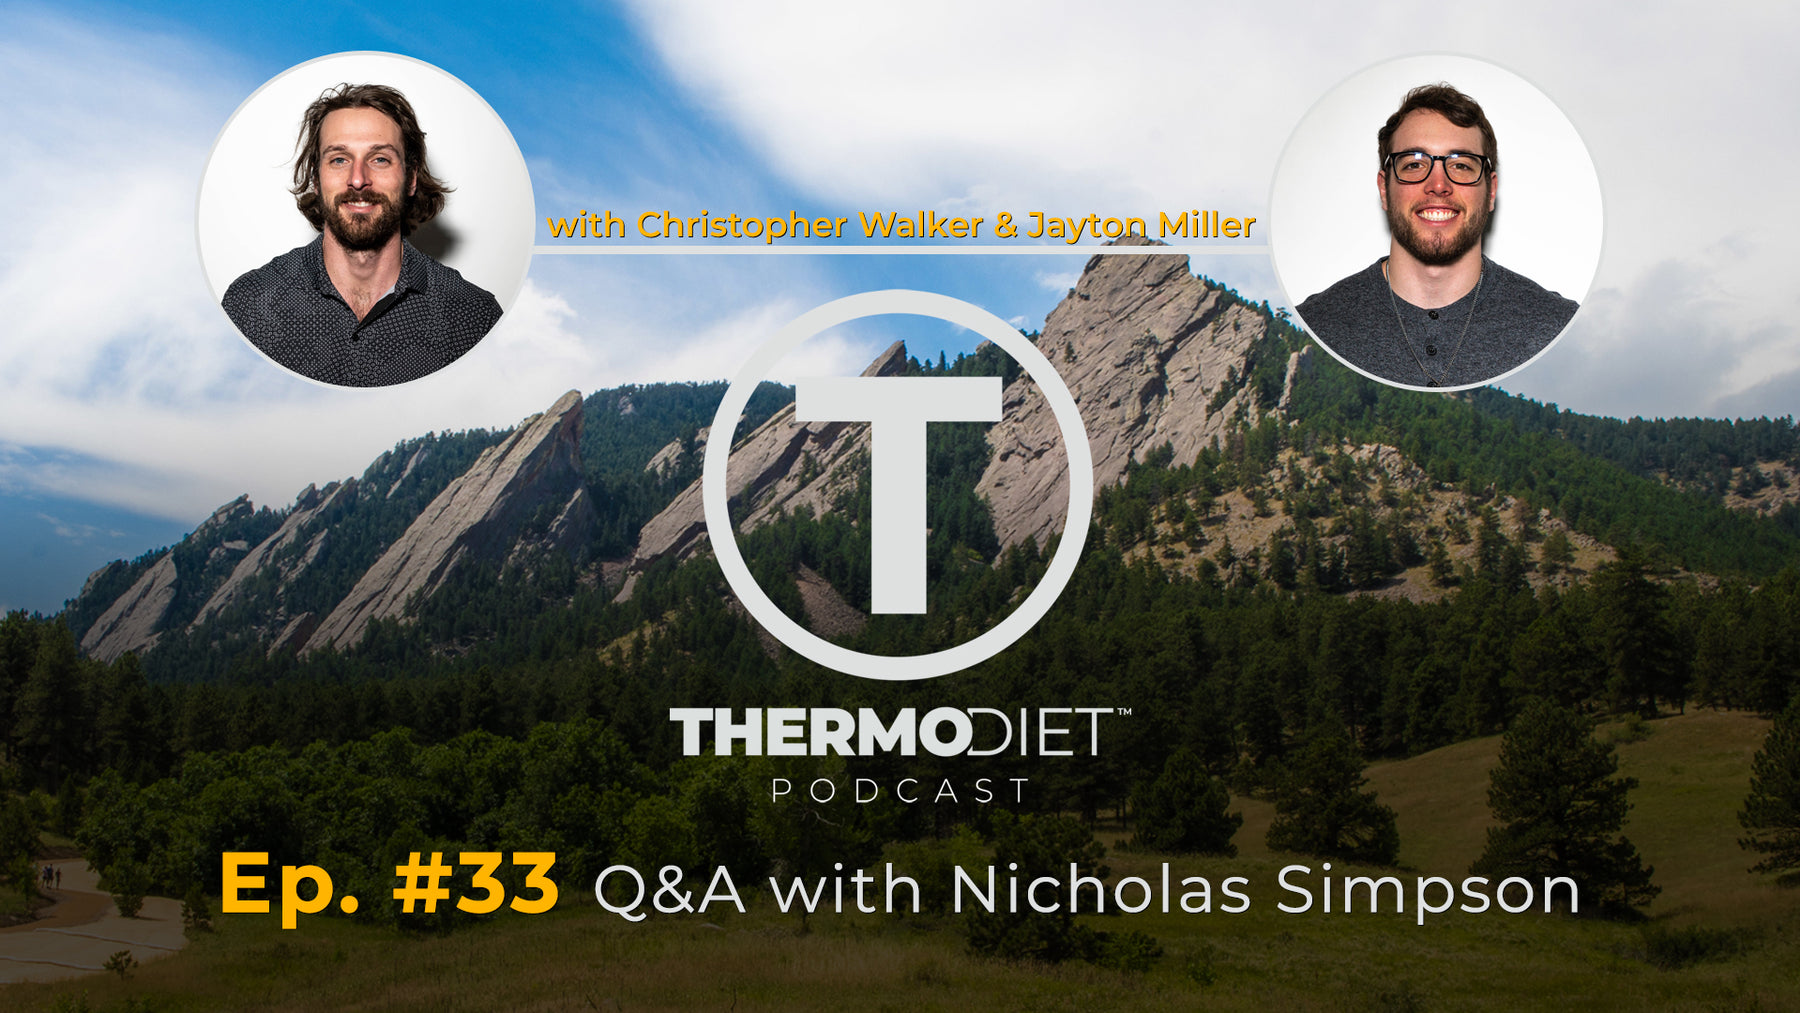 The Thermo Diet Podcast Episode 33 - Nicholas Simpson